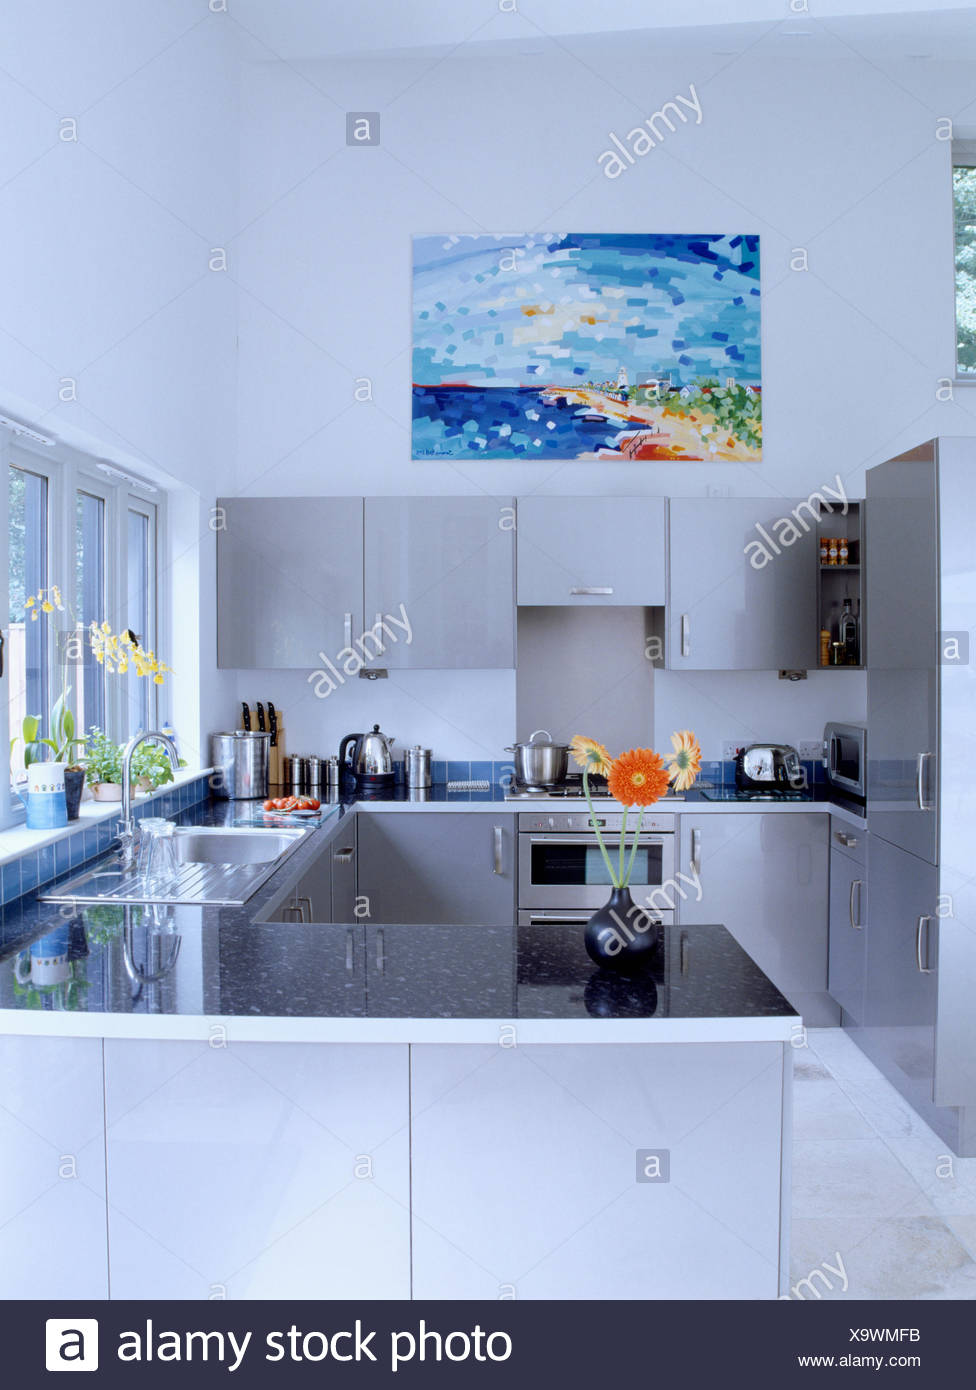 Granite Topped Worktops In Modern White Kitchen With Pale Grey Fitted Wall Units And Large Coastal Picture Stock Photo Alamy